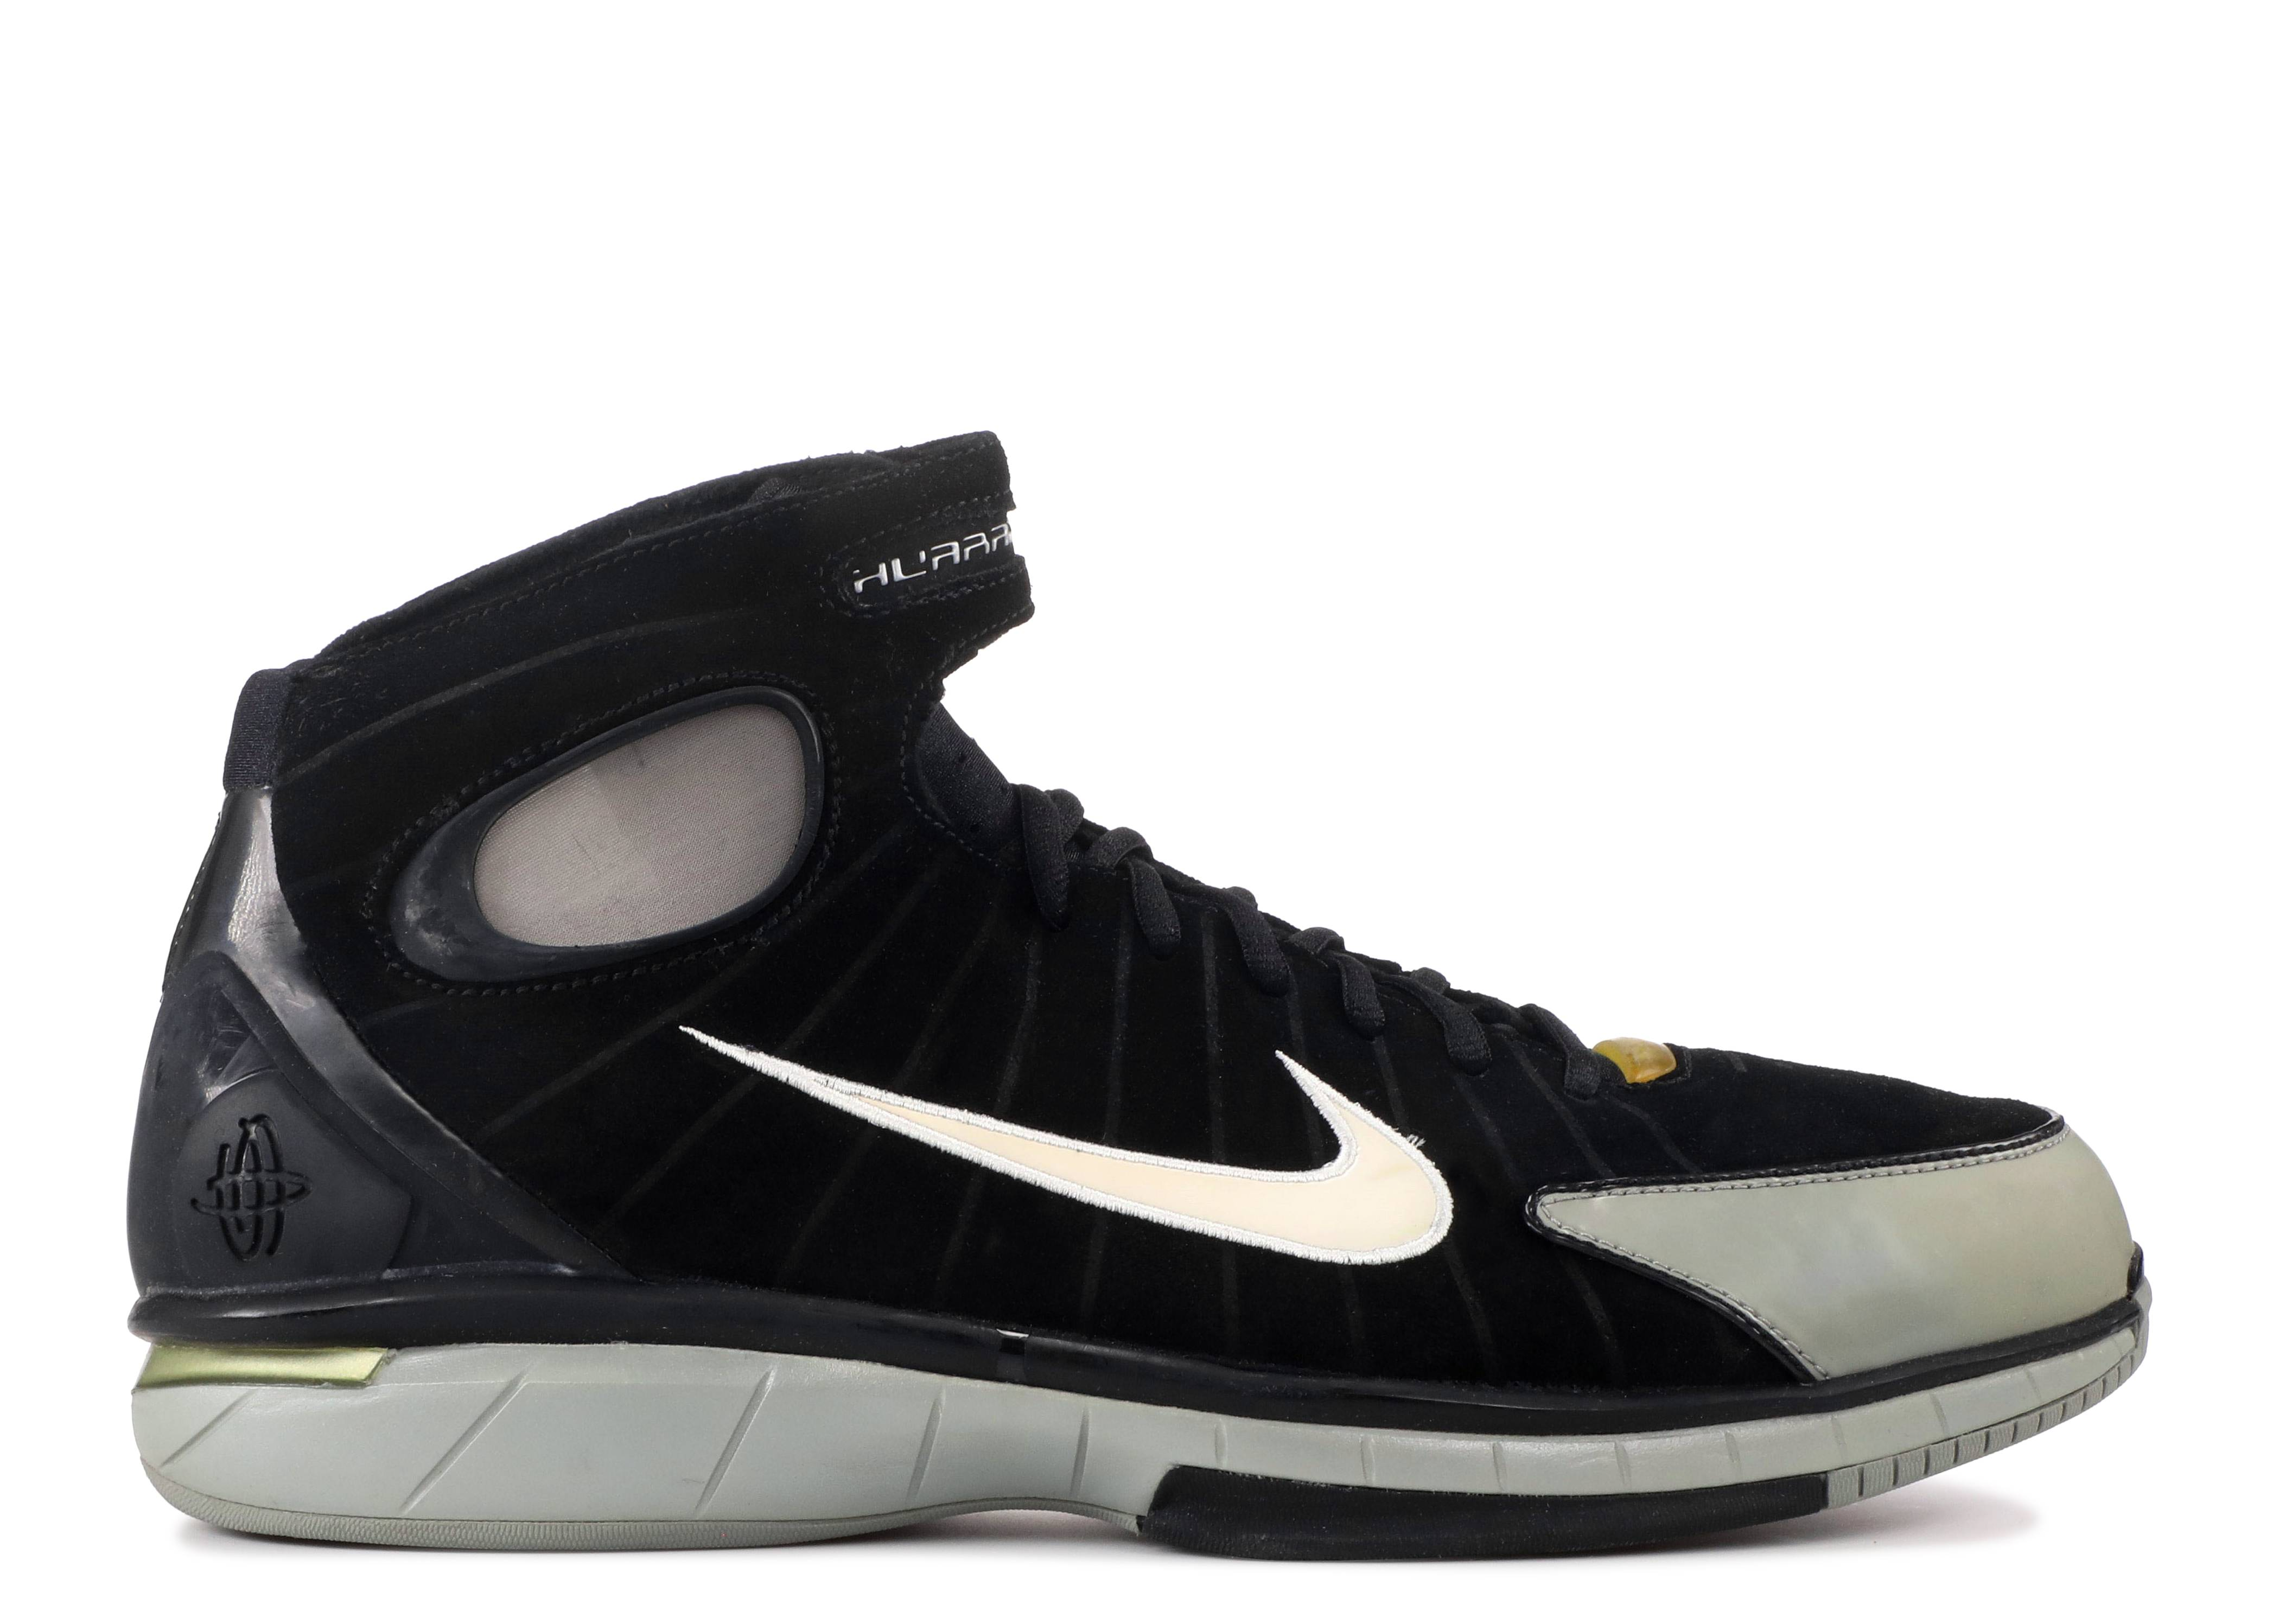 e0d35d29e248 Air Zoom Huarache 2k4 - Nike - 308475 012 - black  white-metallic silver